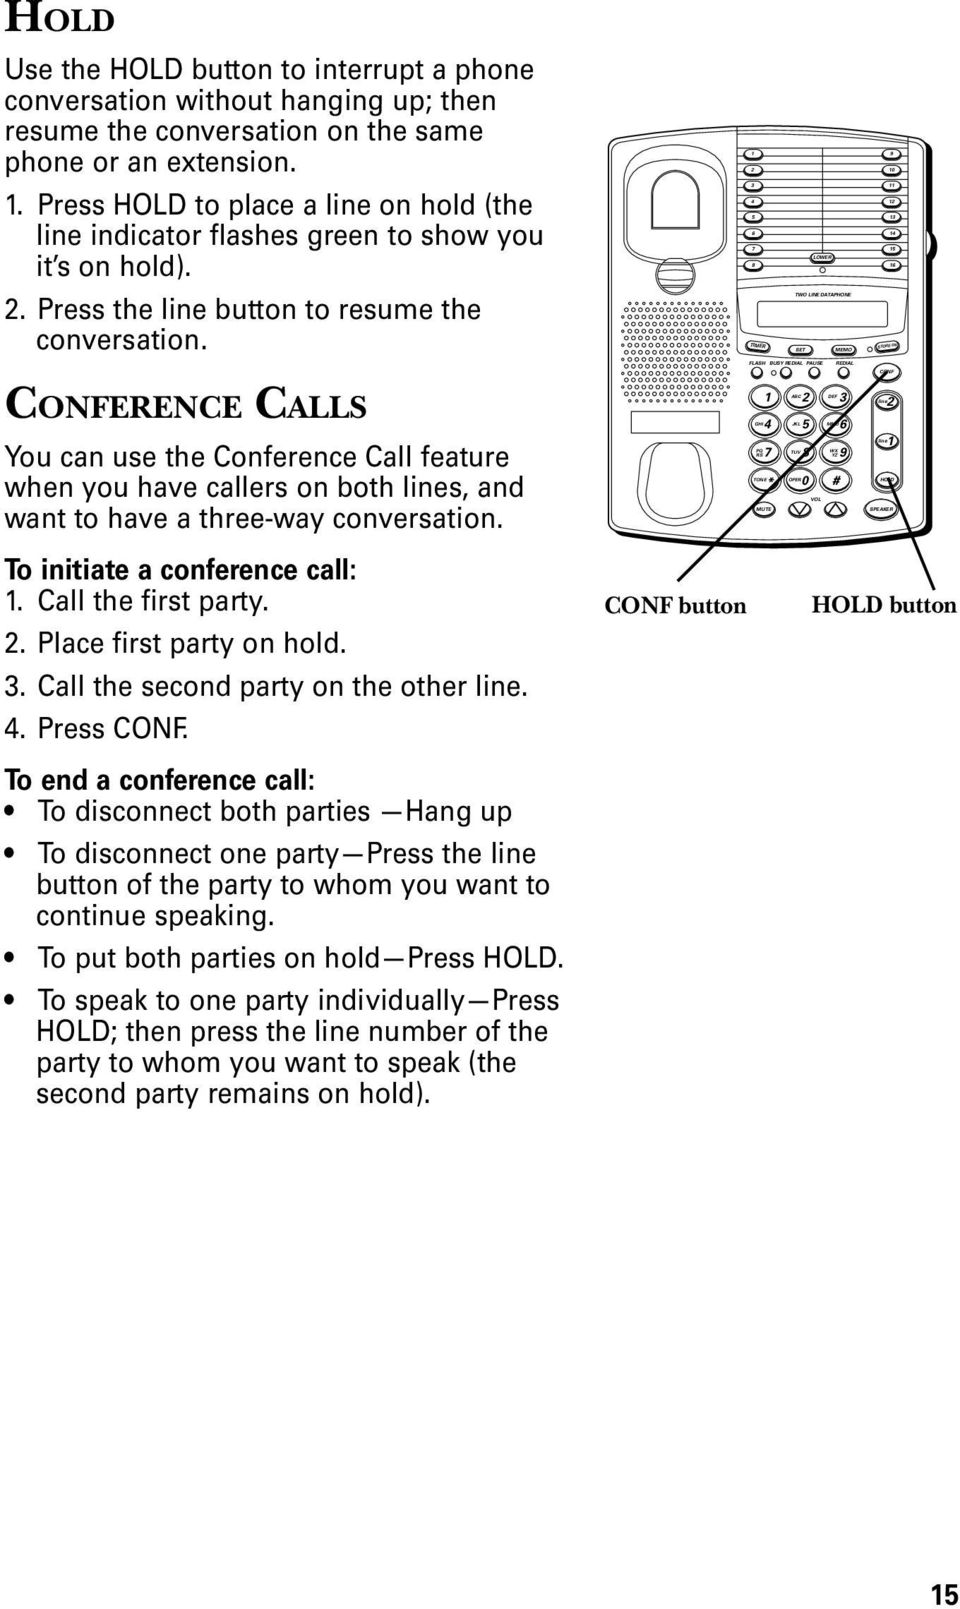 ERENCE CALLS You can use the Conference Call feature when you have callers on both lines, and want to have a three-way conversation. GHI RS ABC TUV MNO YZ 0 line line To initiate a conference call:.